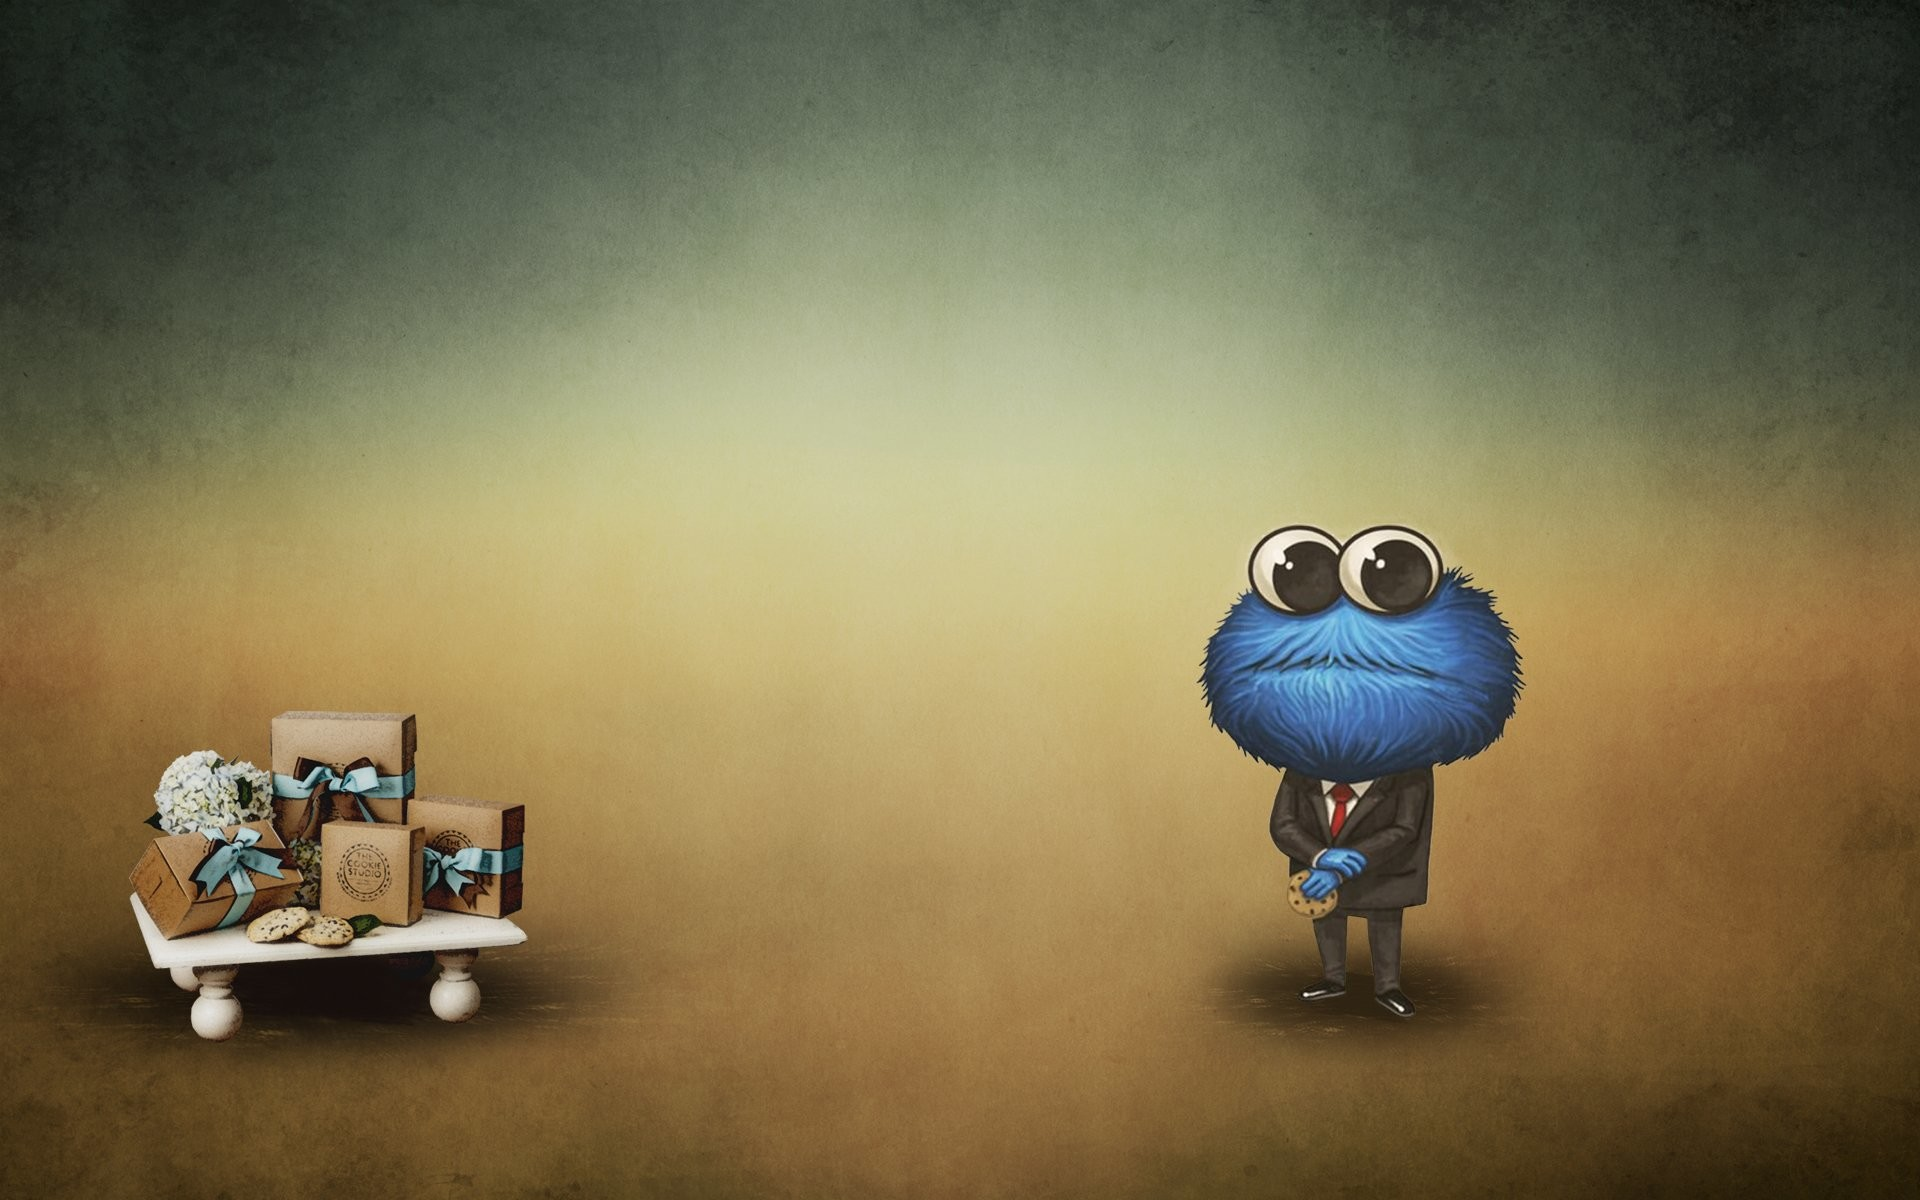 Cookie Monster Backgrounds Wallpaper Cool Cookie Monster